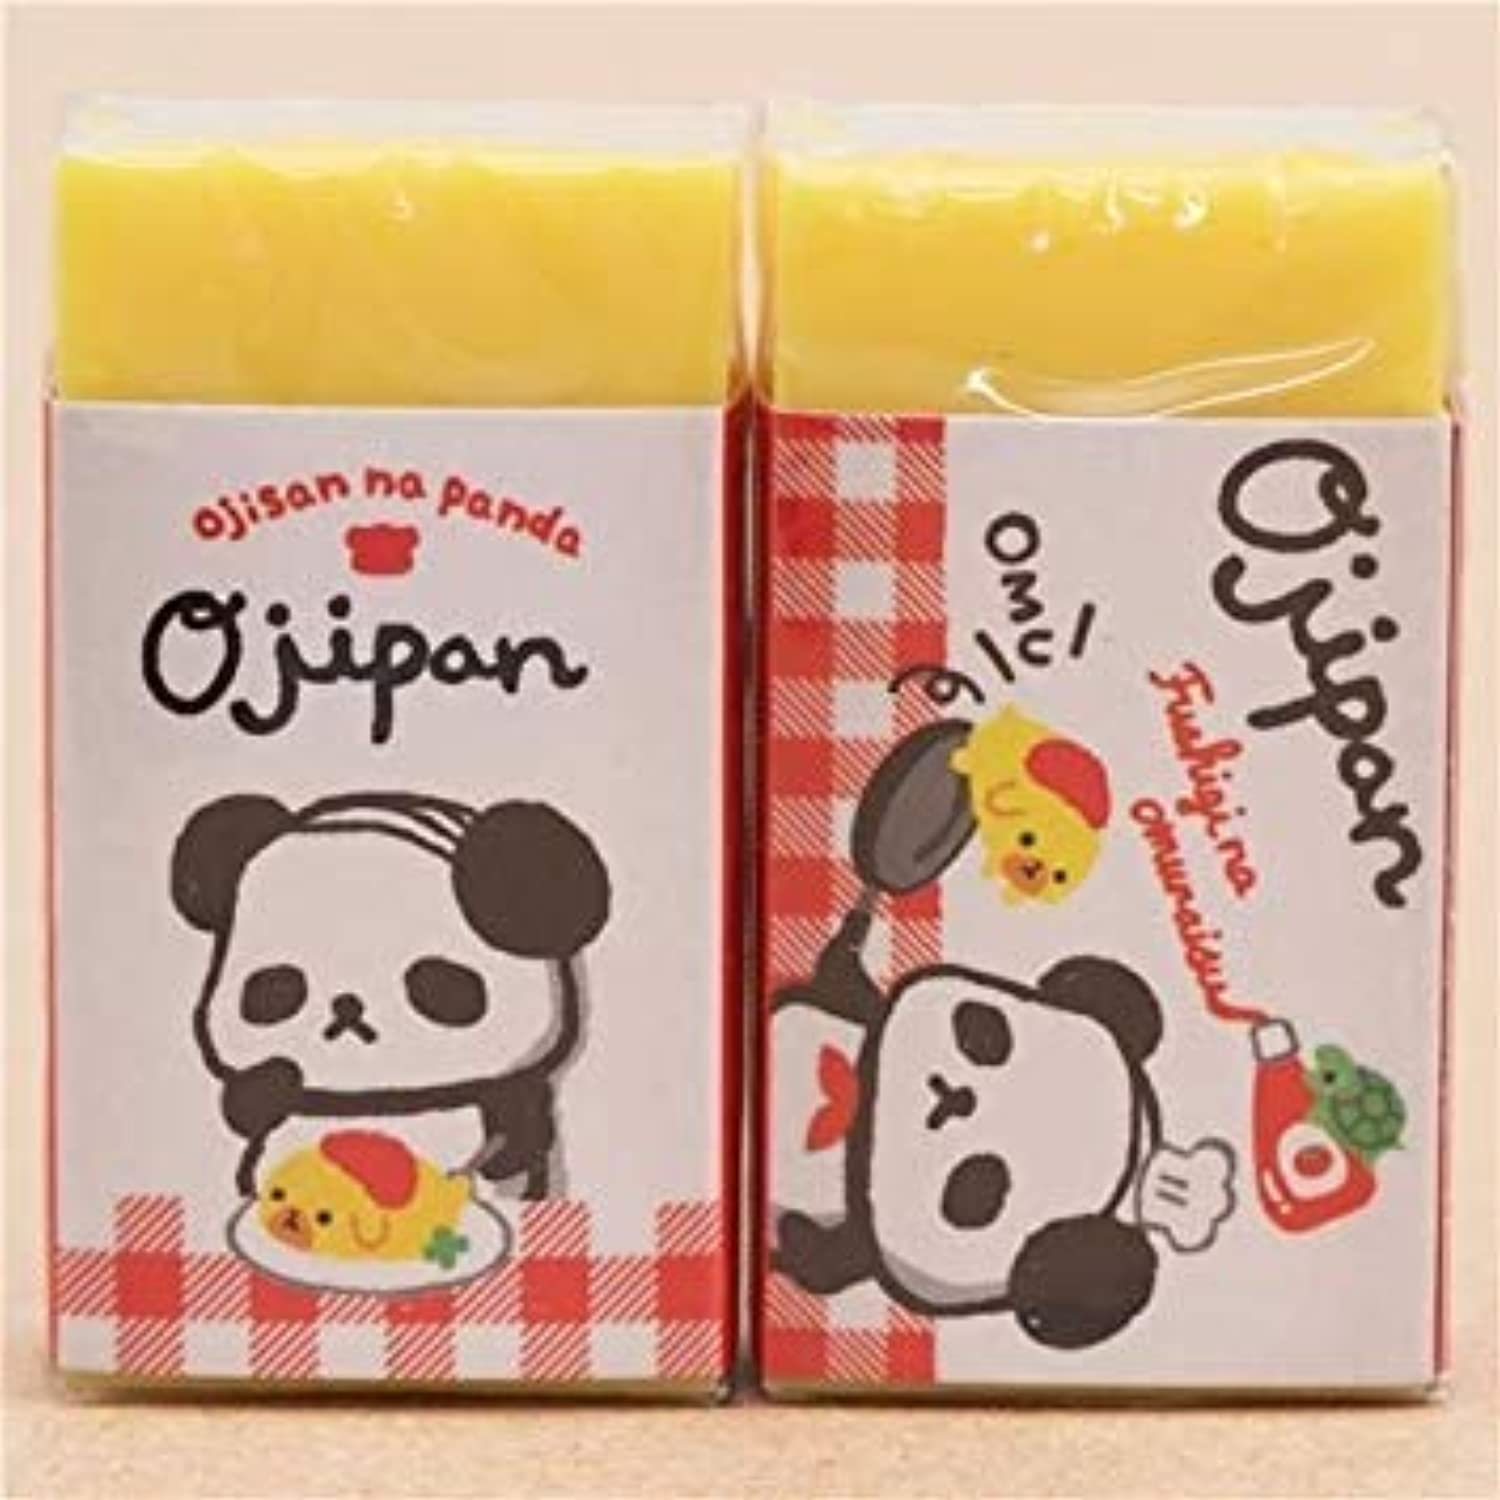 Cute Yellow Ojipan Panda Cooking Eraser from Japan